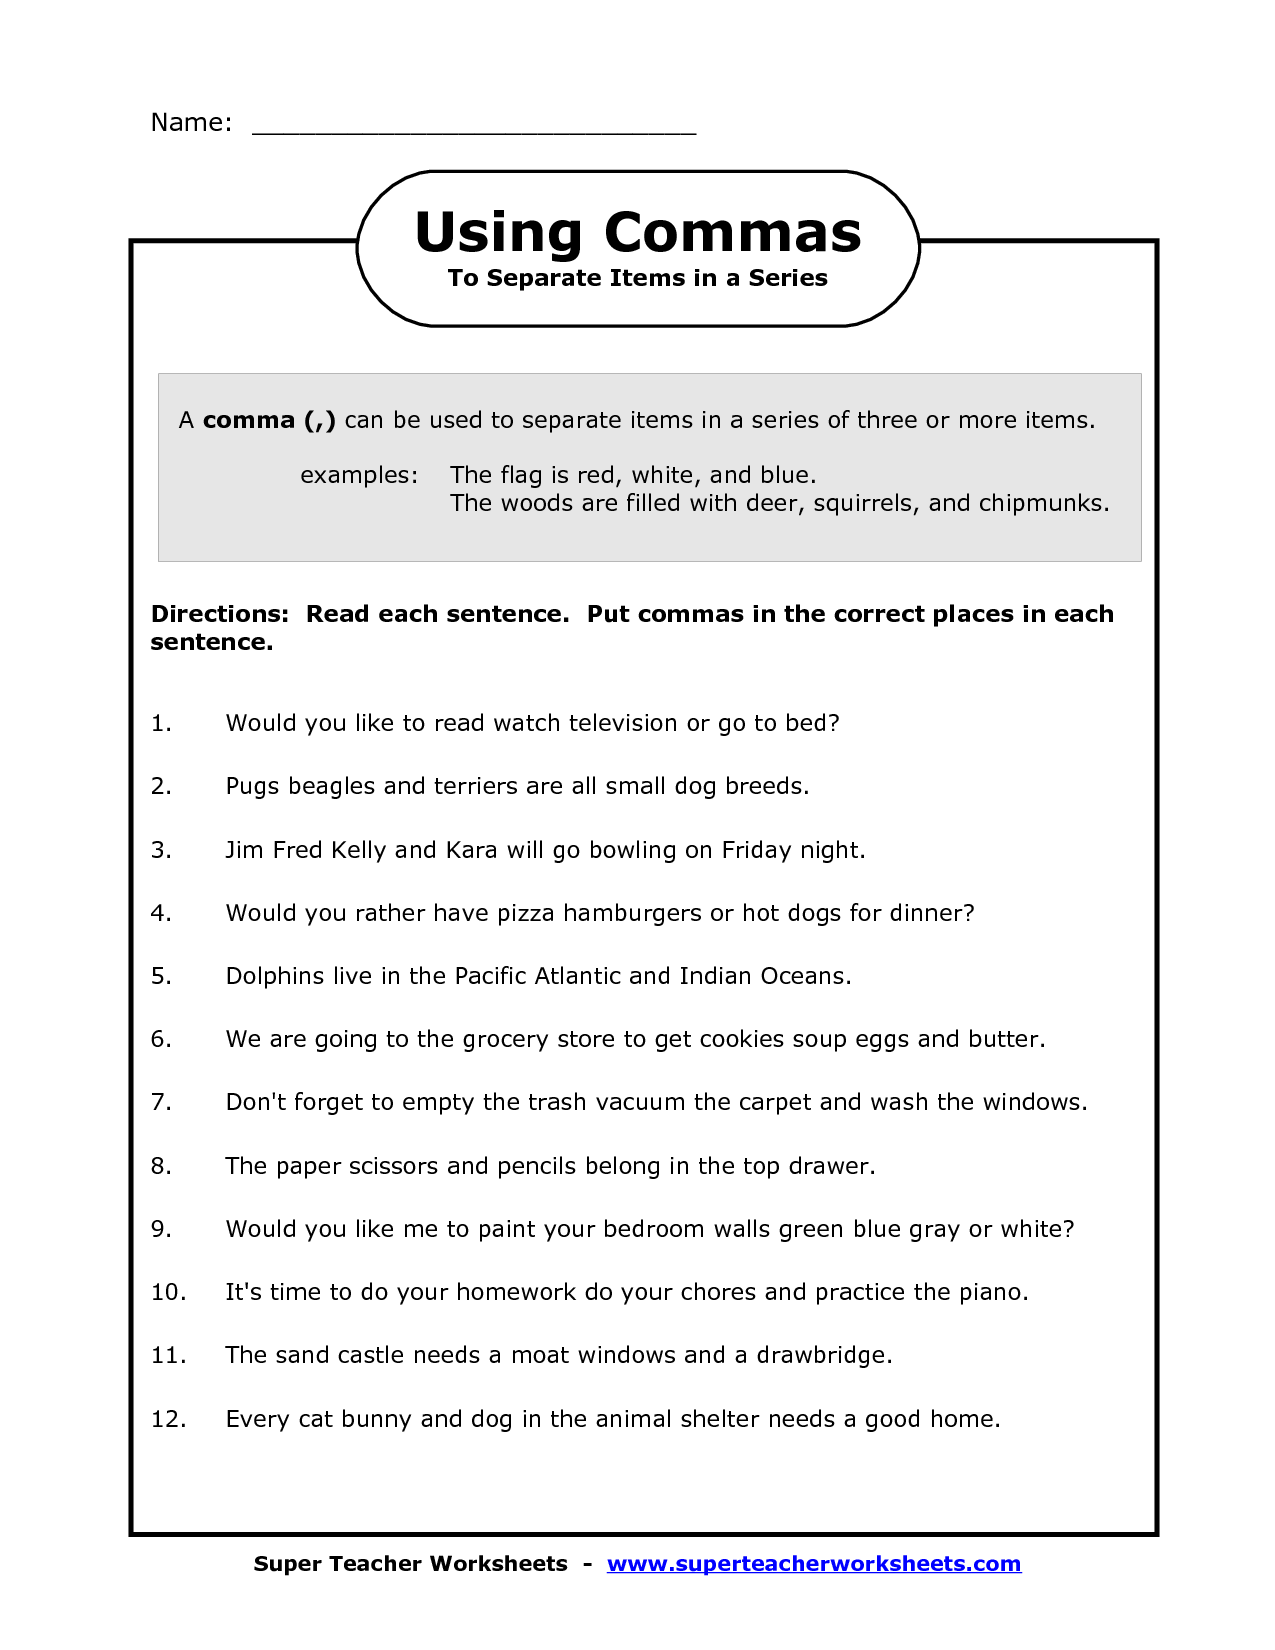 Worksheet On Commas